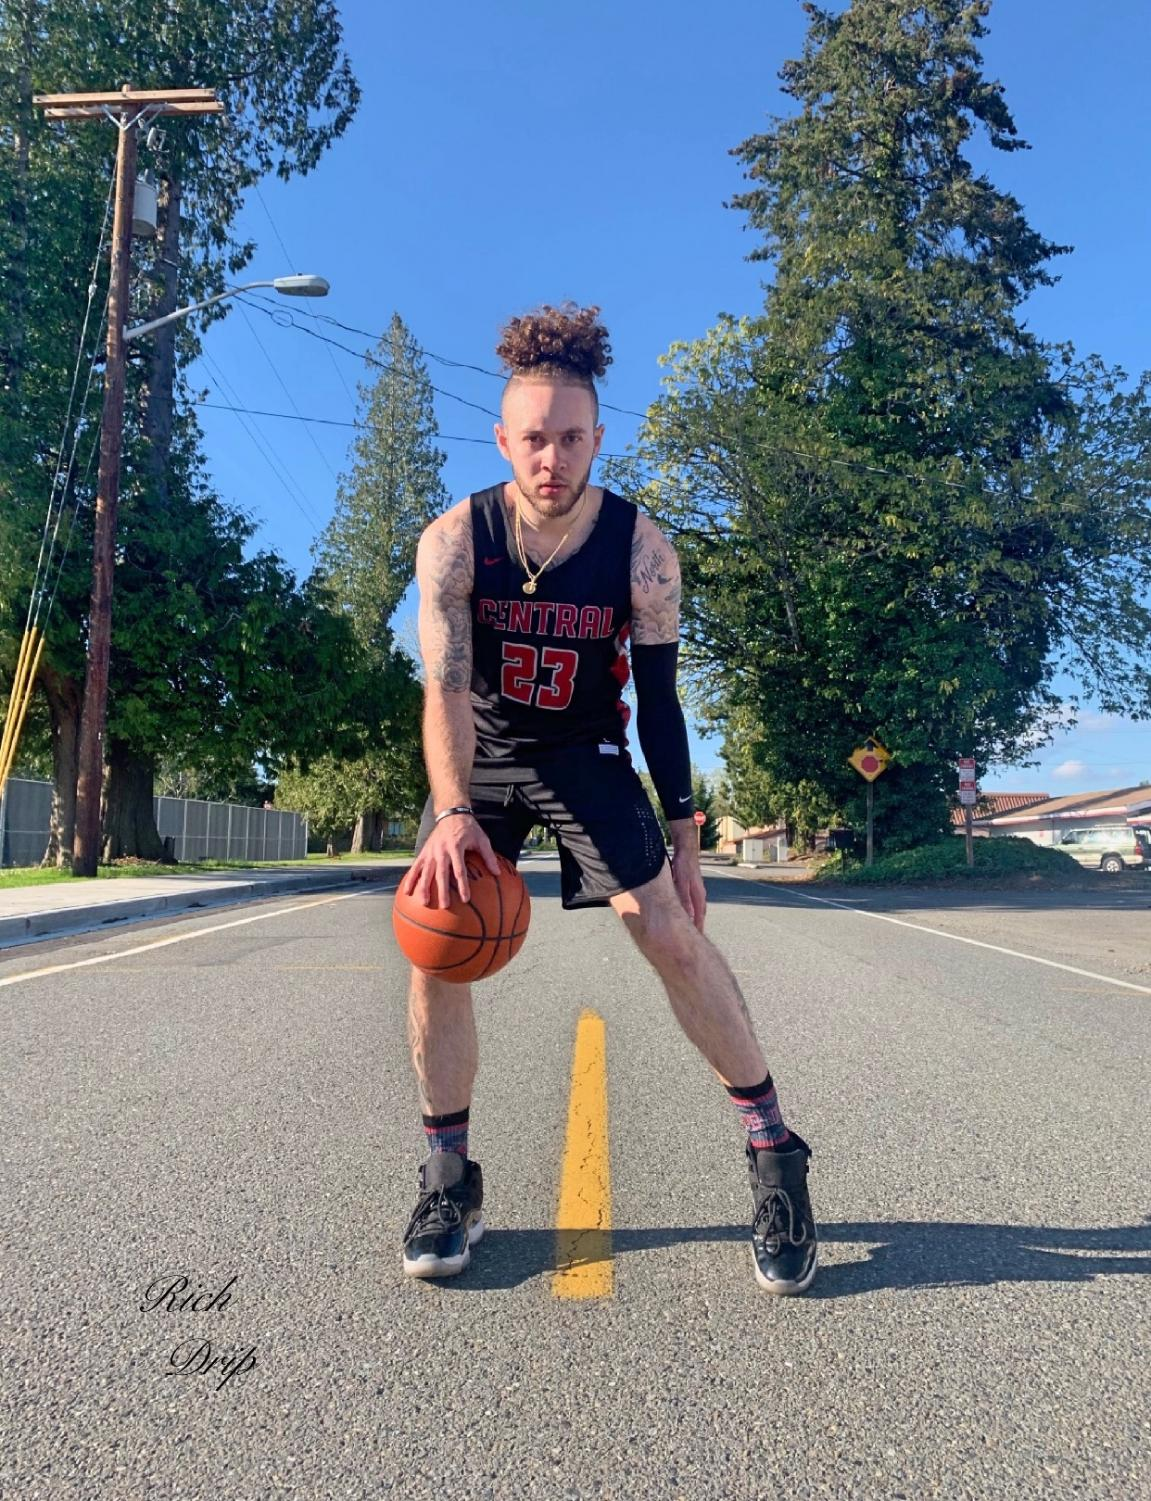 Montoya played at Seattle University until his sophmore year. He came to Ellensburg to spend the last two years of his career as a college athlete with the Wildcats. He has declared that he will be entering into the 2019 NBA draft.